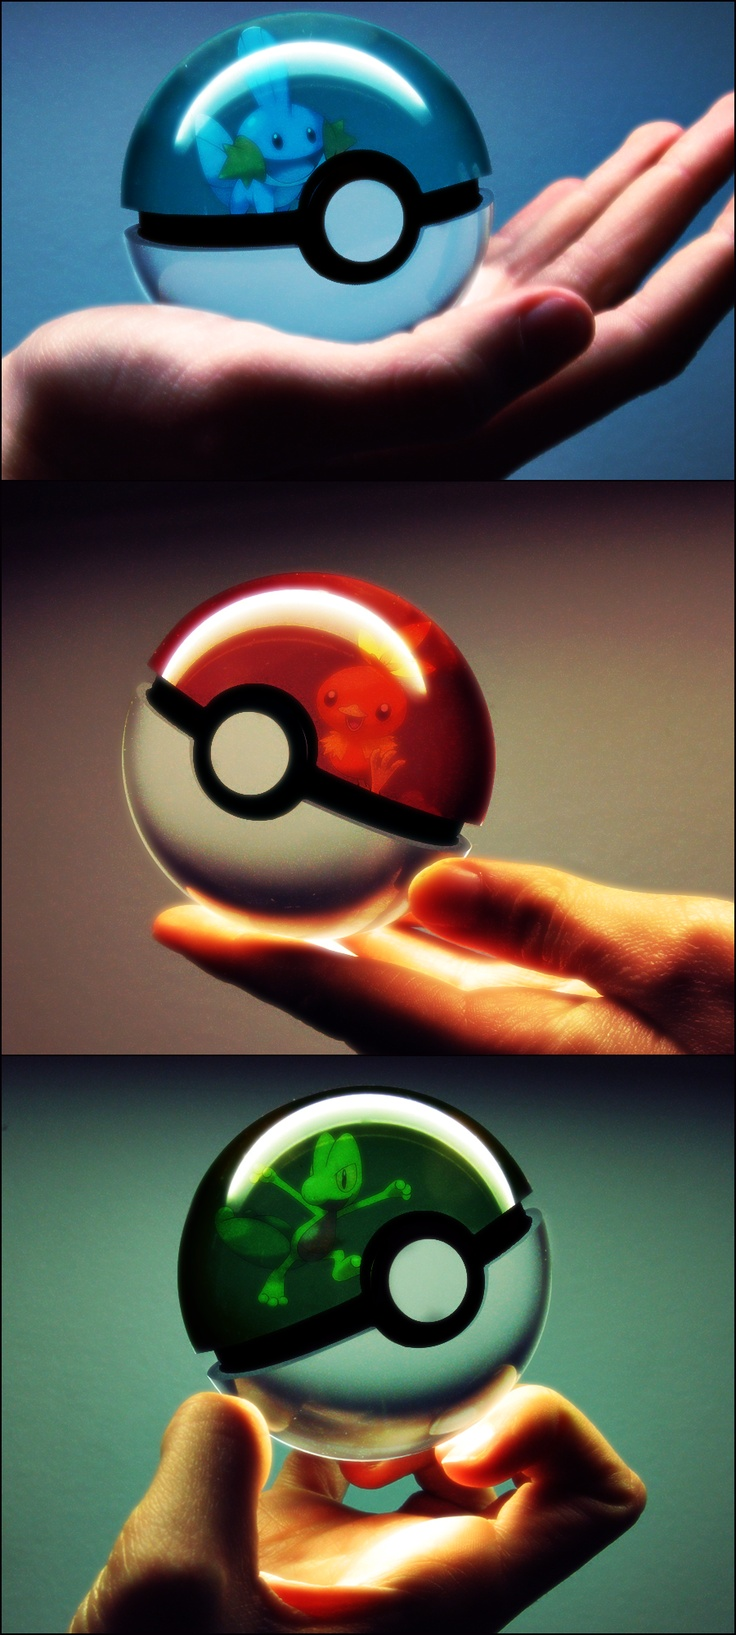 pokeball wallpaper pinterest - photo #20